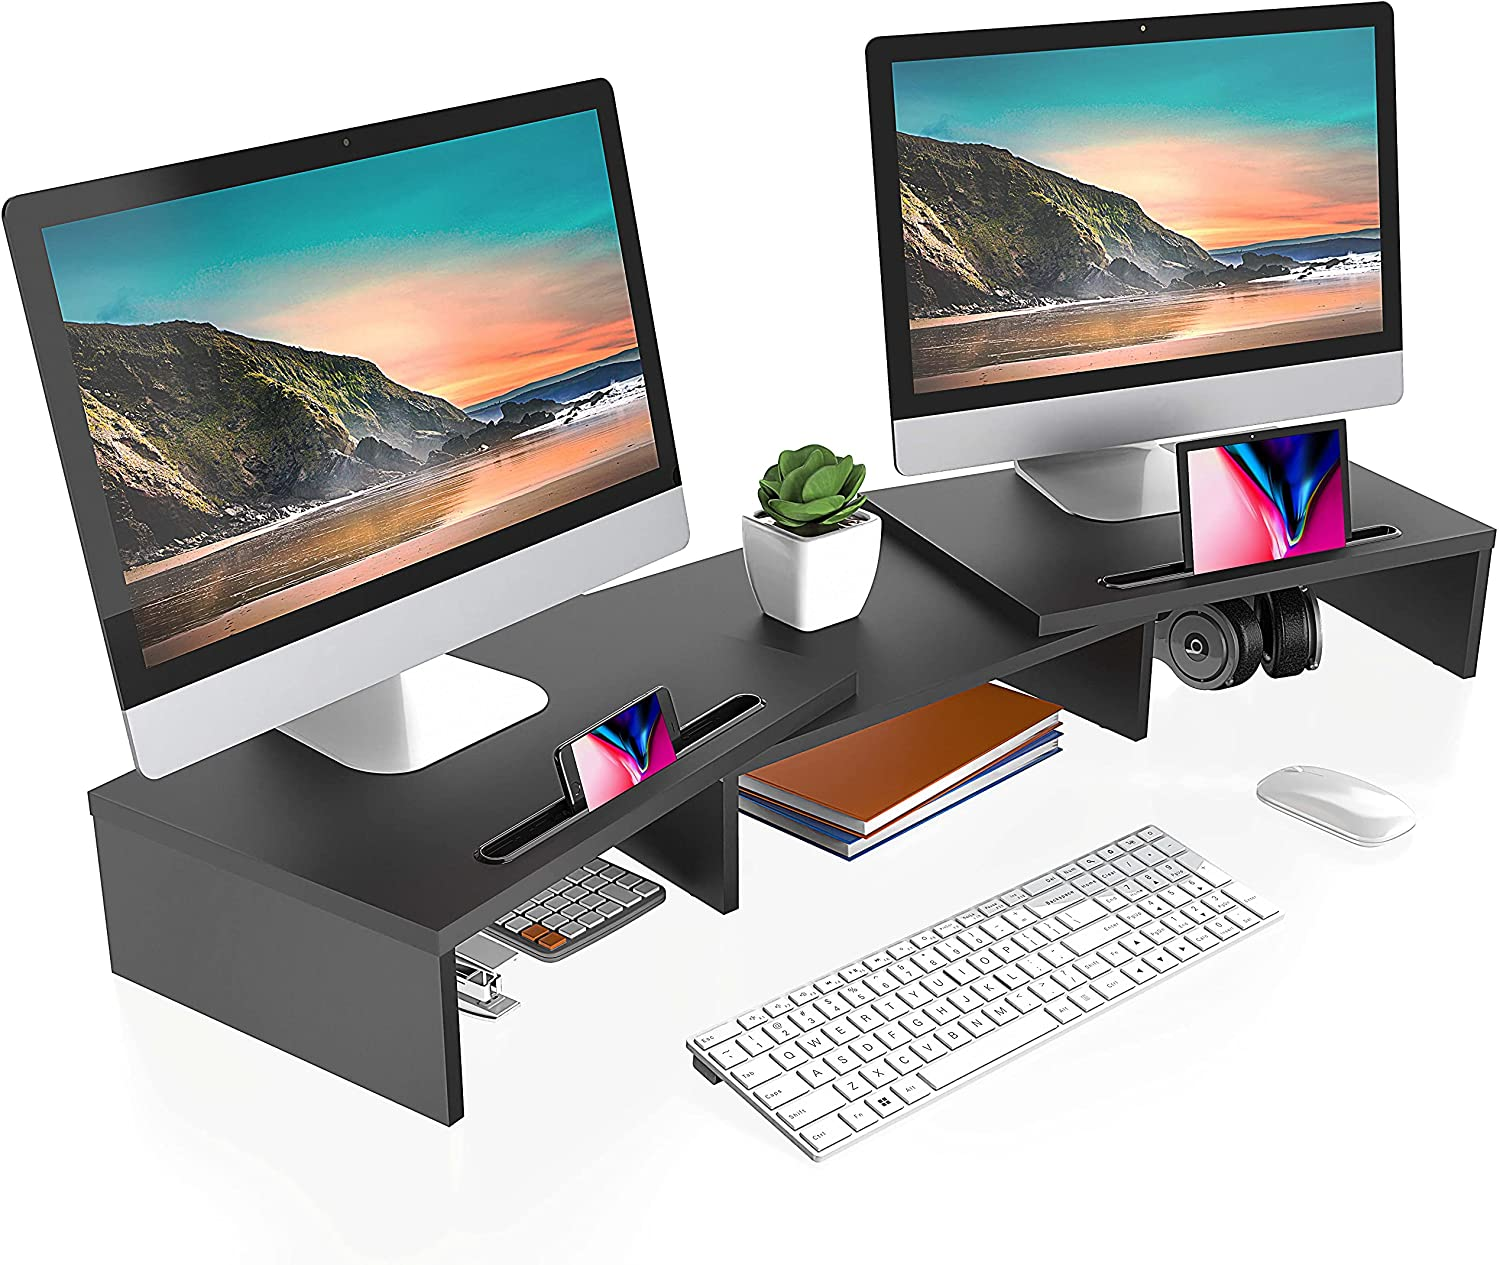 FITUEYES Dual Monitor Stand – 3 Shelf Computer Monitor Riser with Cellphone Holder, Wood Desktop Stand with Adjustable Length and Angle, Desk Accessories, Office Supplies, Black, DT111101WB